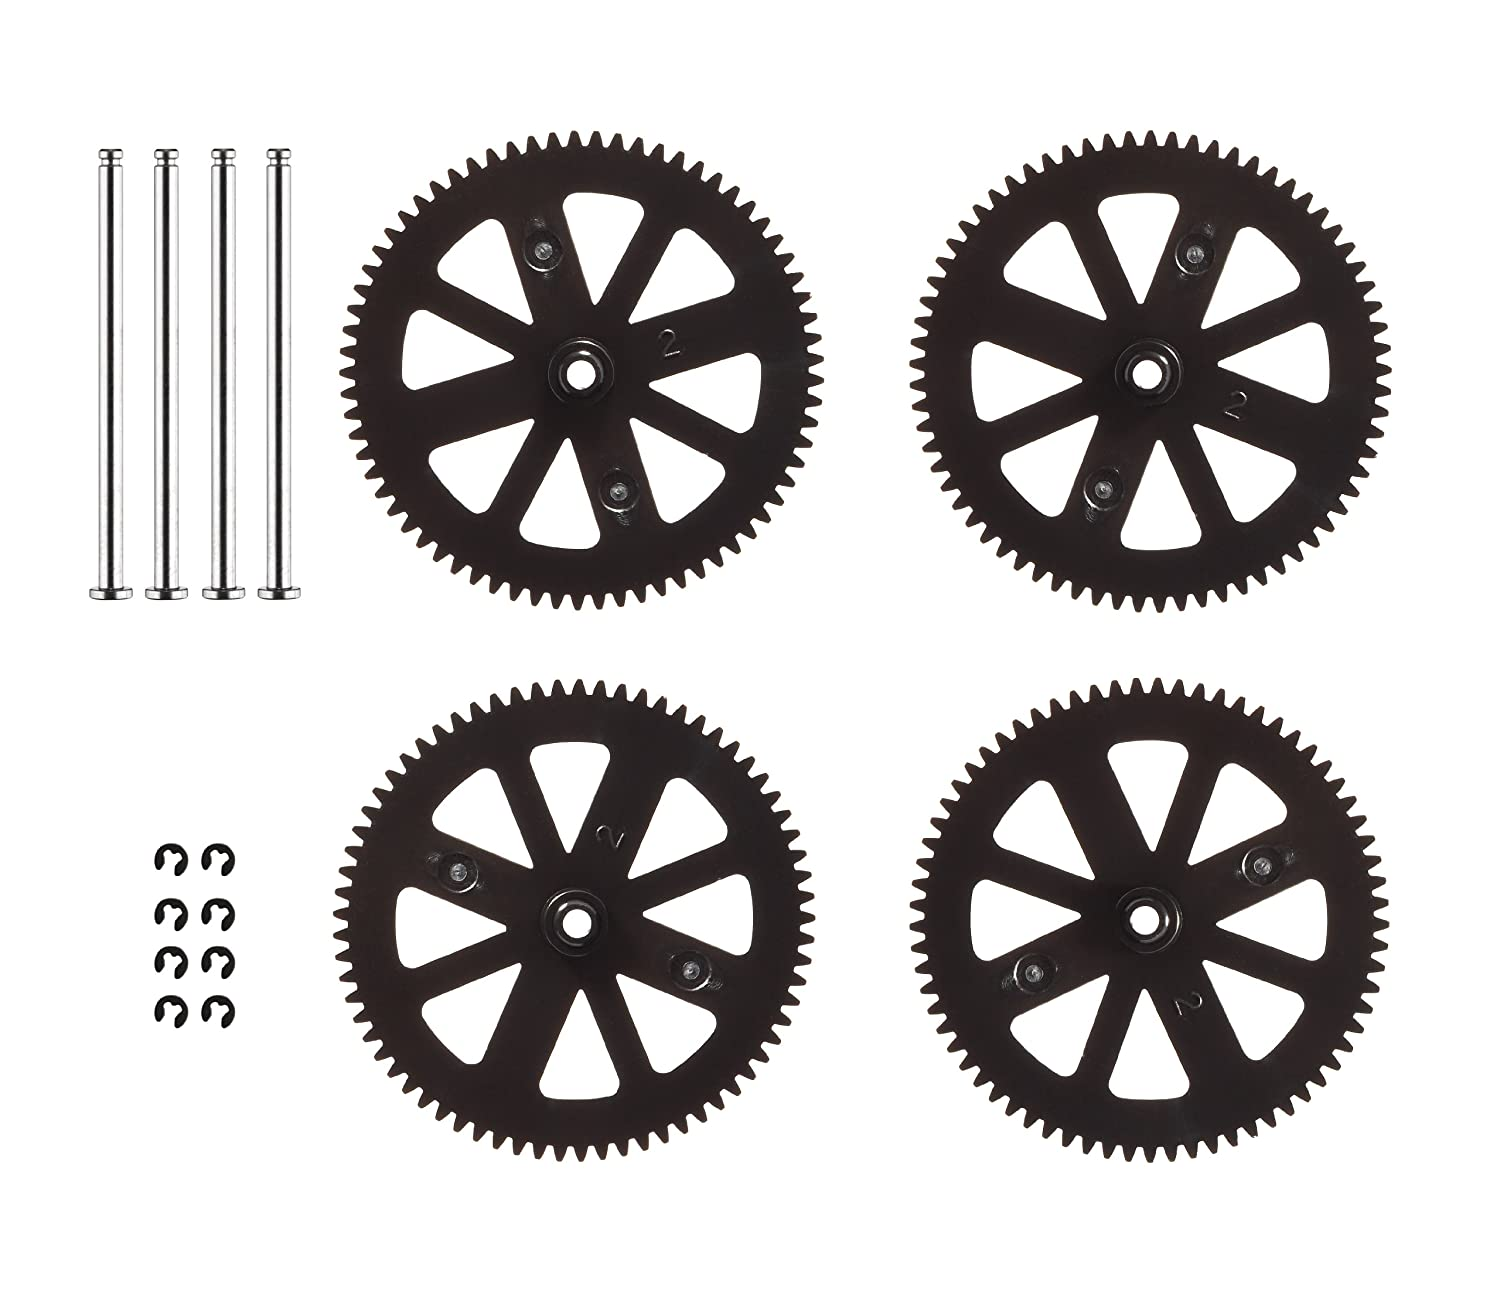 Parrot AR Drone 2.0 Gears & Shafts - Set of 4 Parrot Inc. PF070047AA